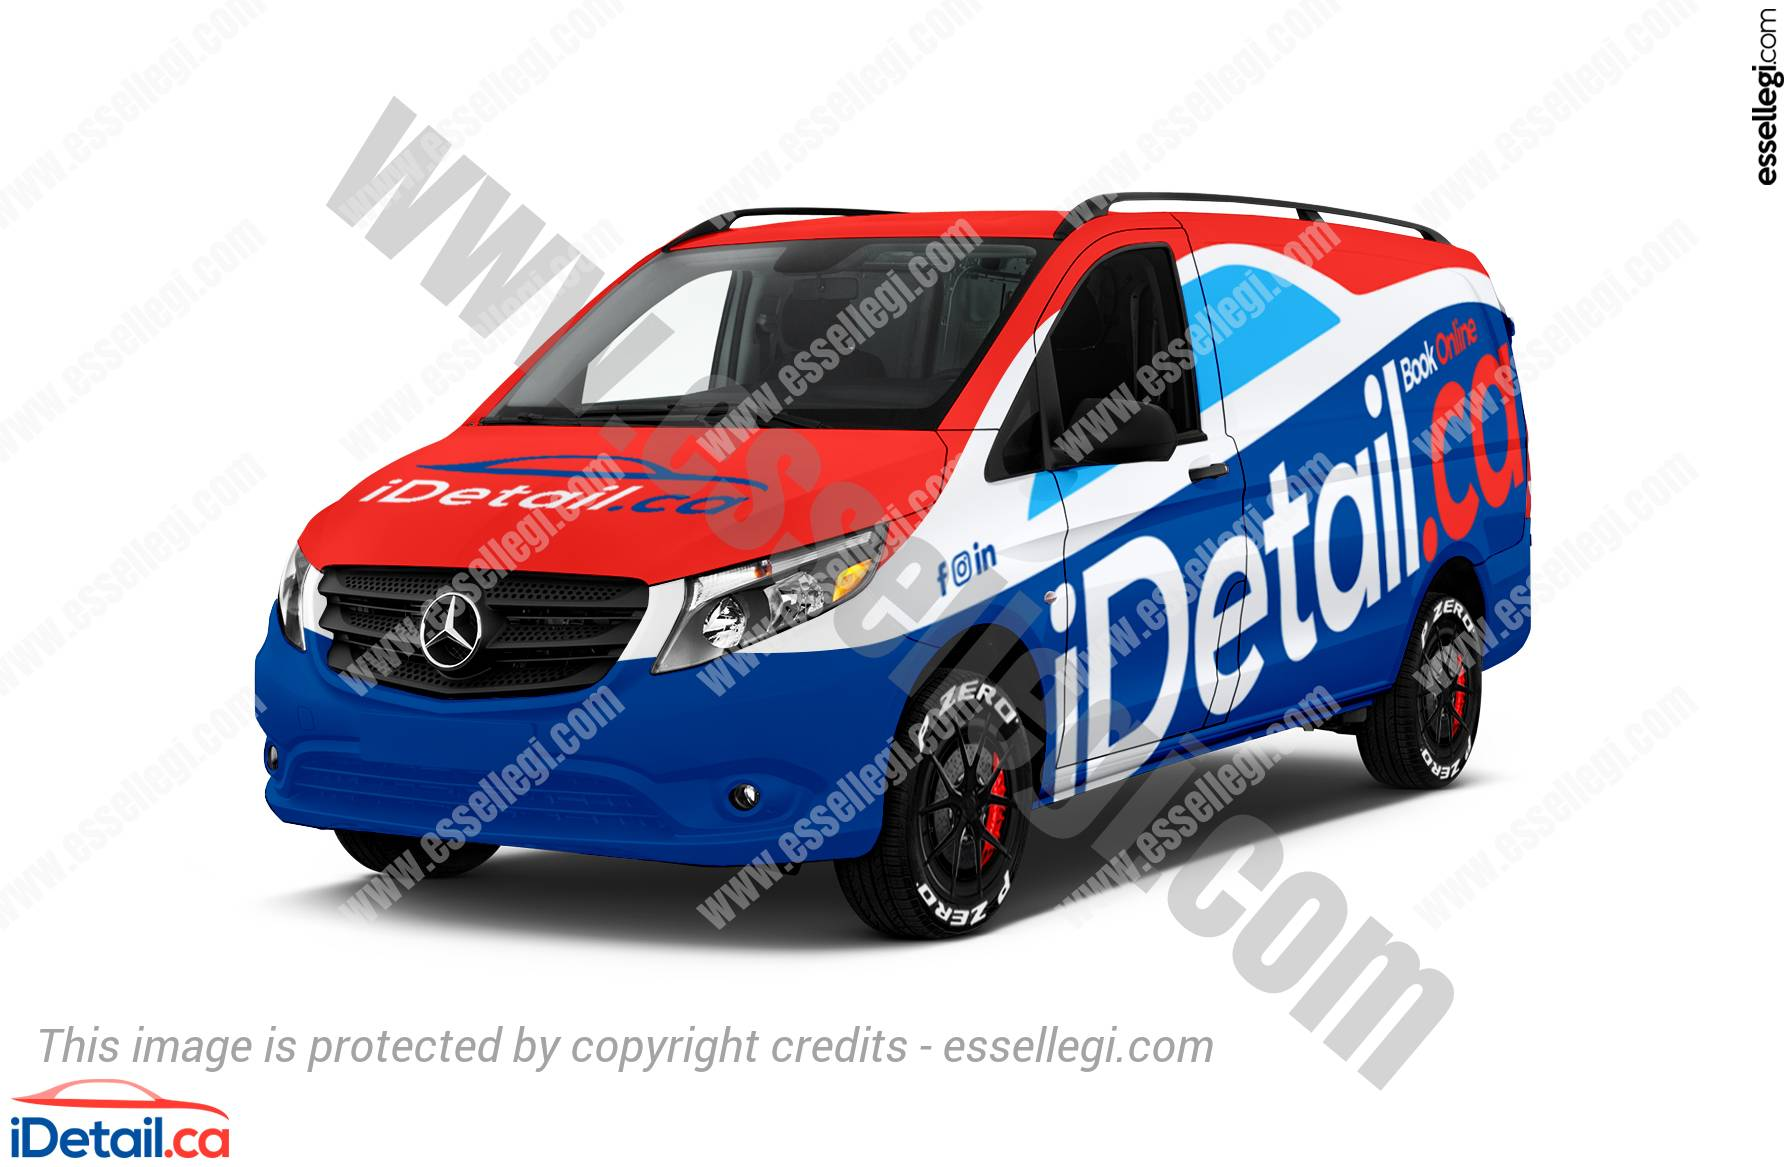 Mercedes Metris | Van Wrap Design by Essellegi Wrap Design